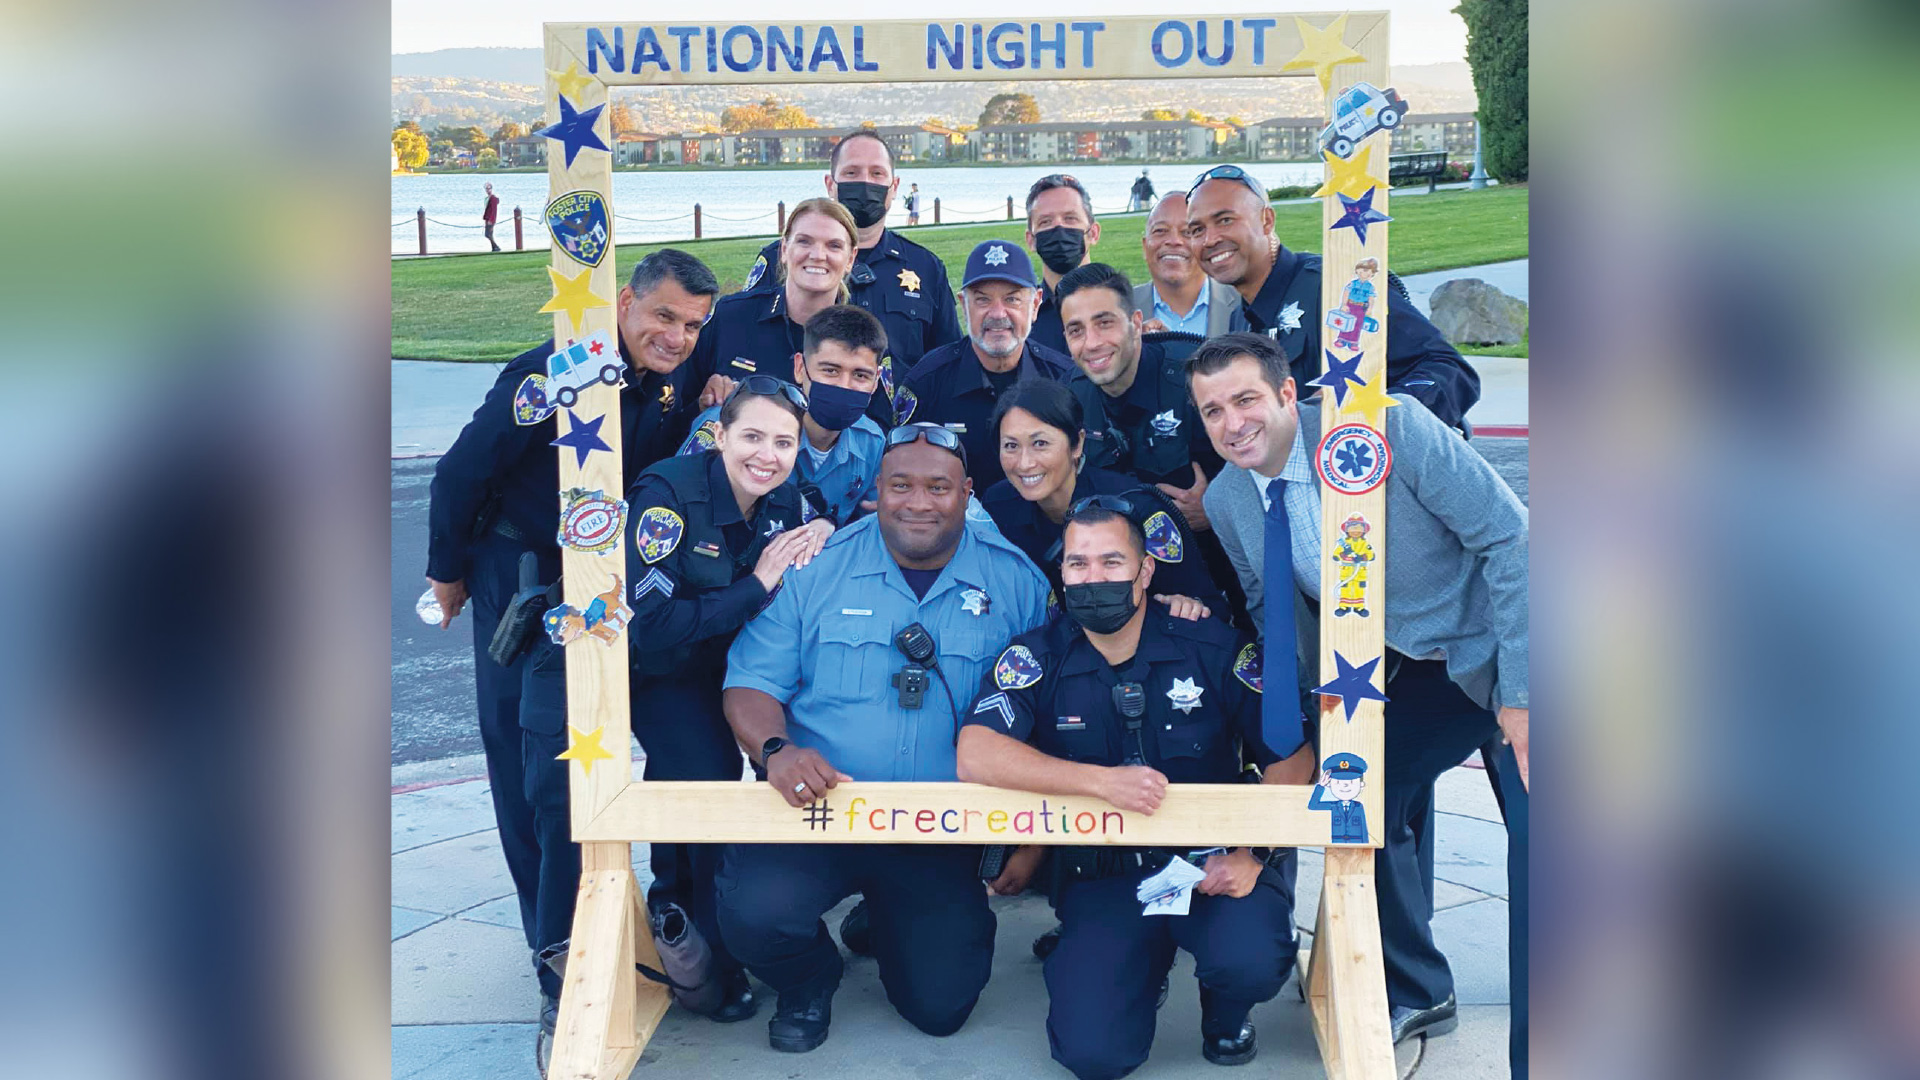 national-night-out-2021-1-foster-city-california-police-department